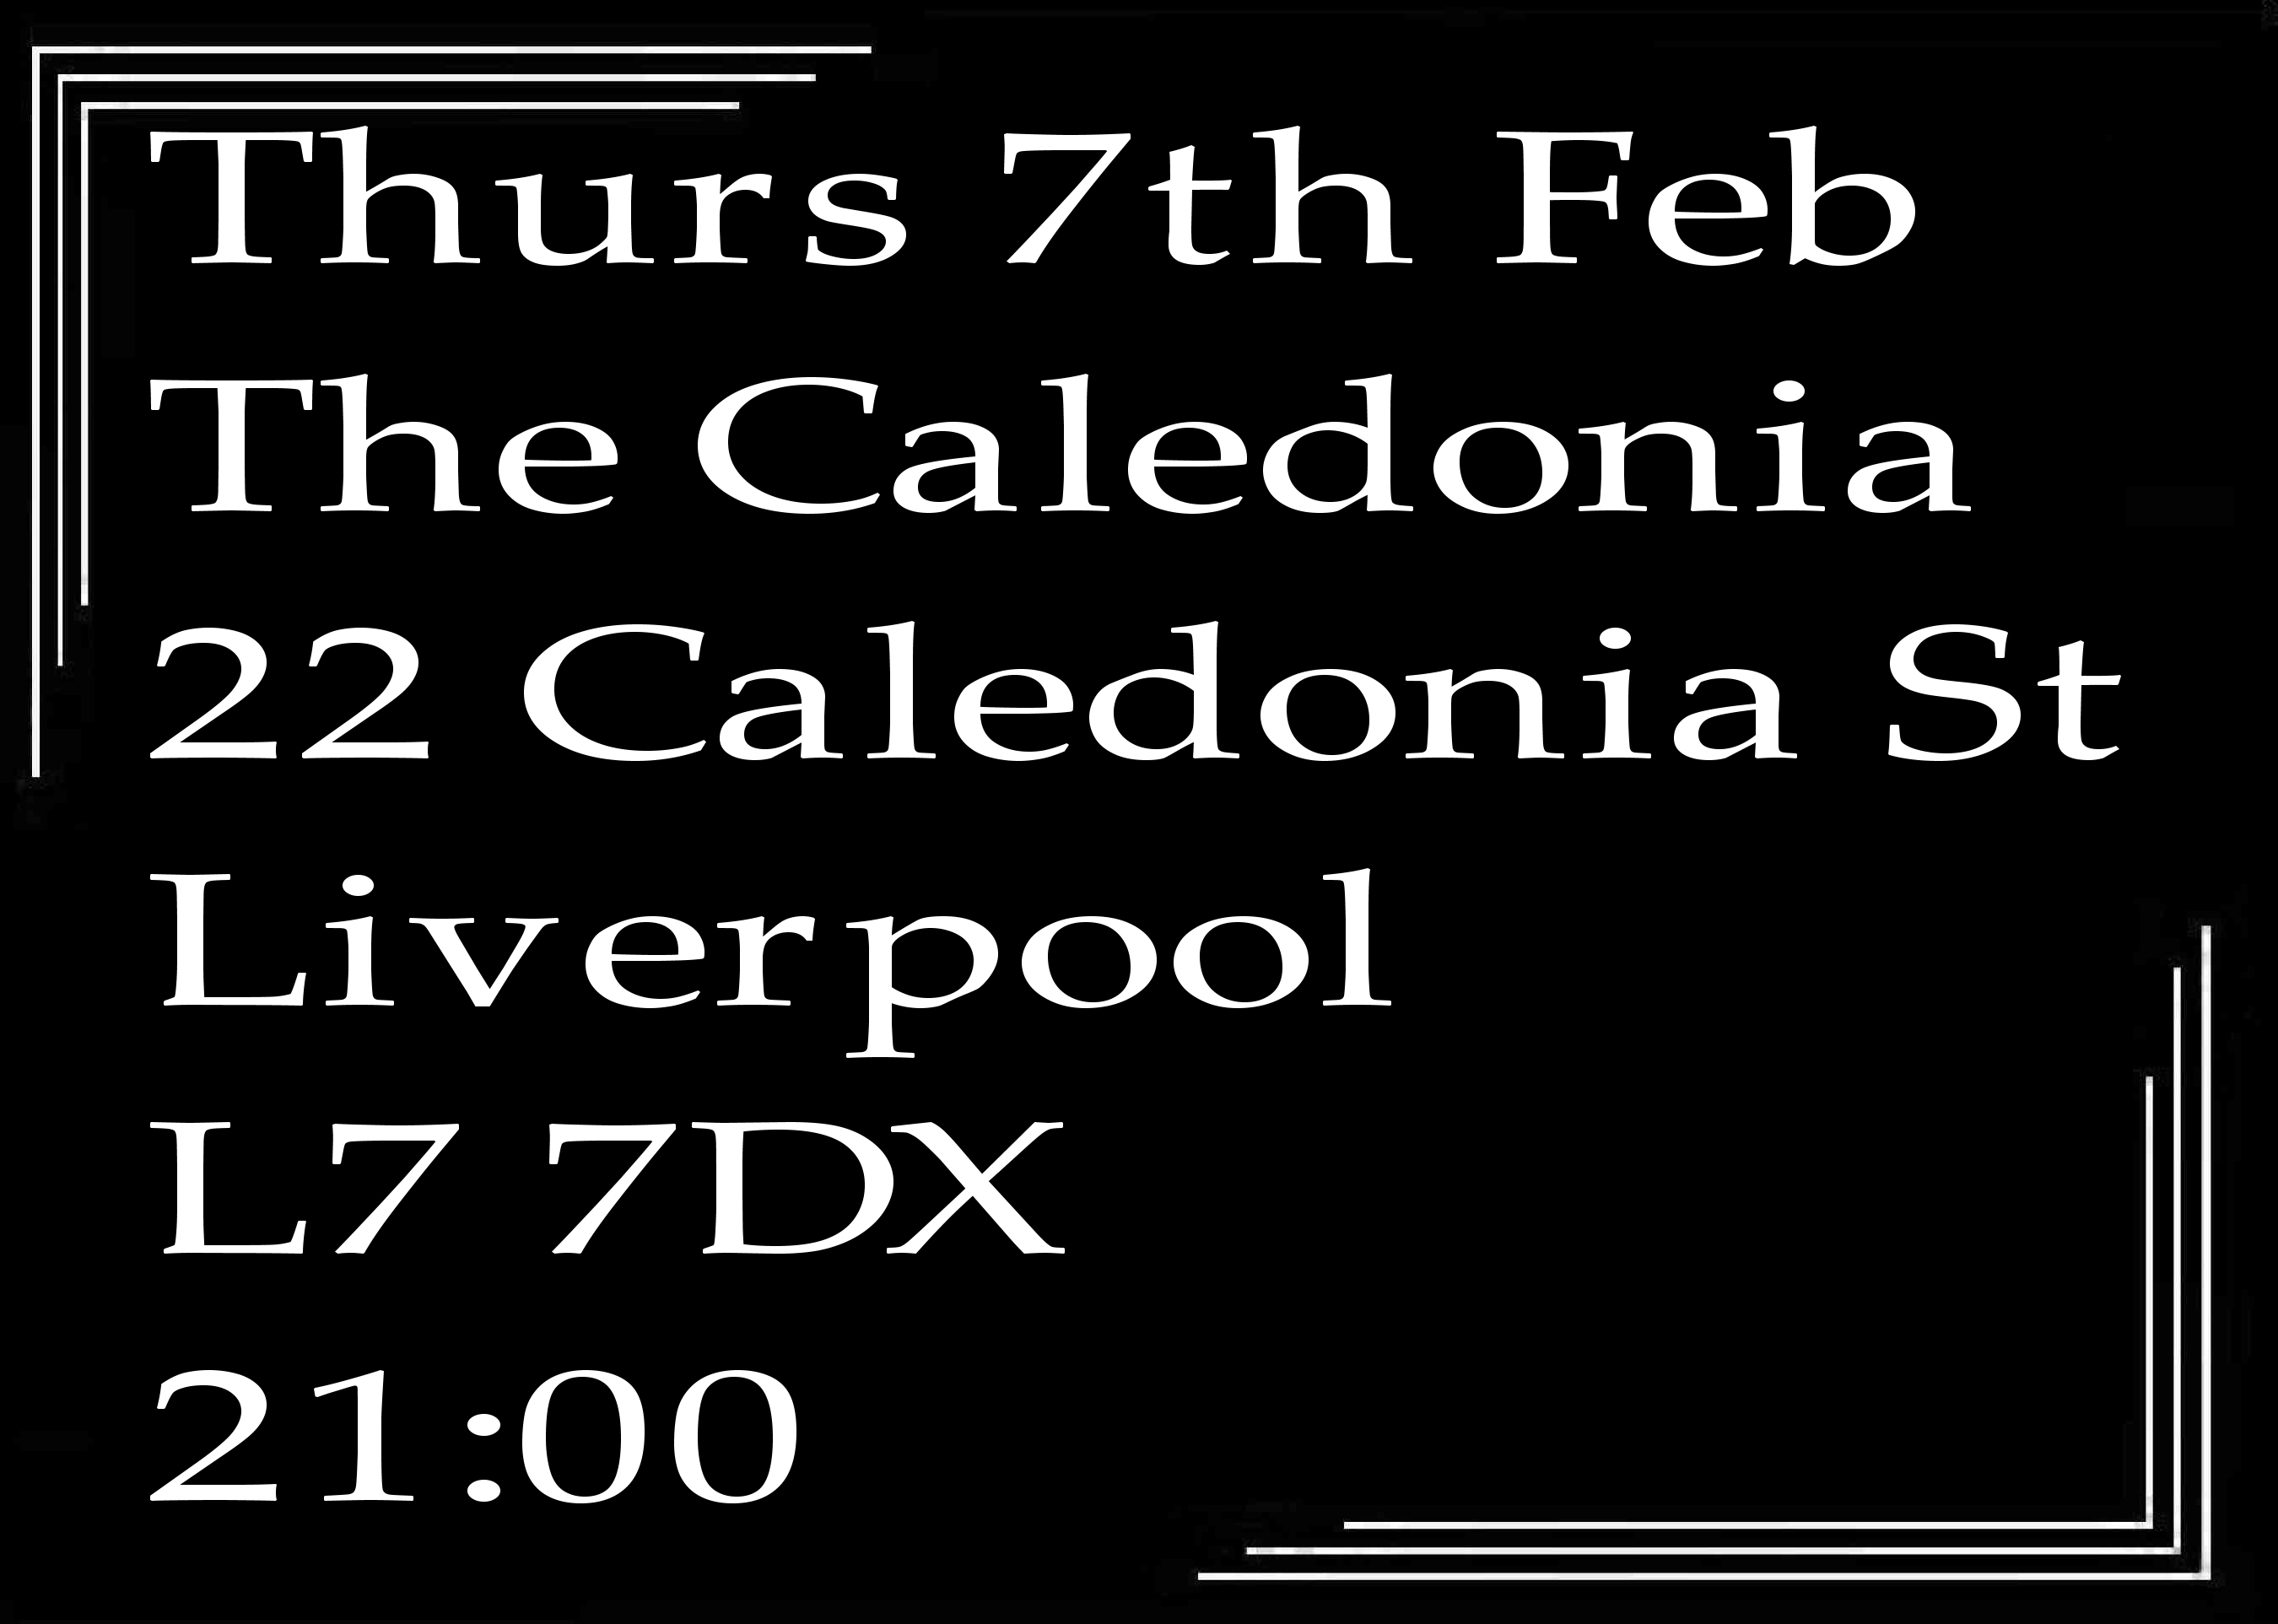 Speakeasy Bootleg Band At The Caledonia Thurs 7th Feb 2019